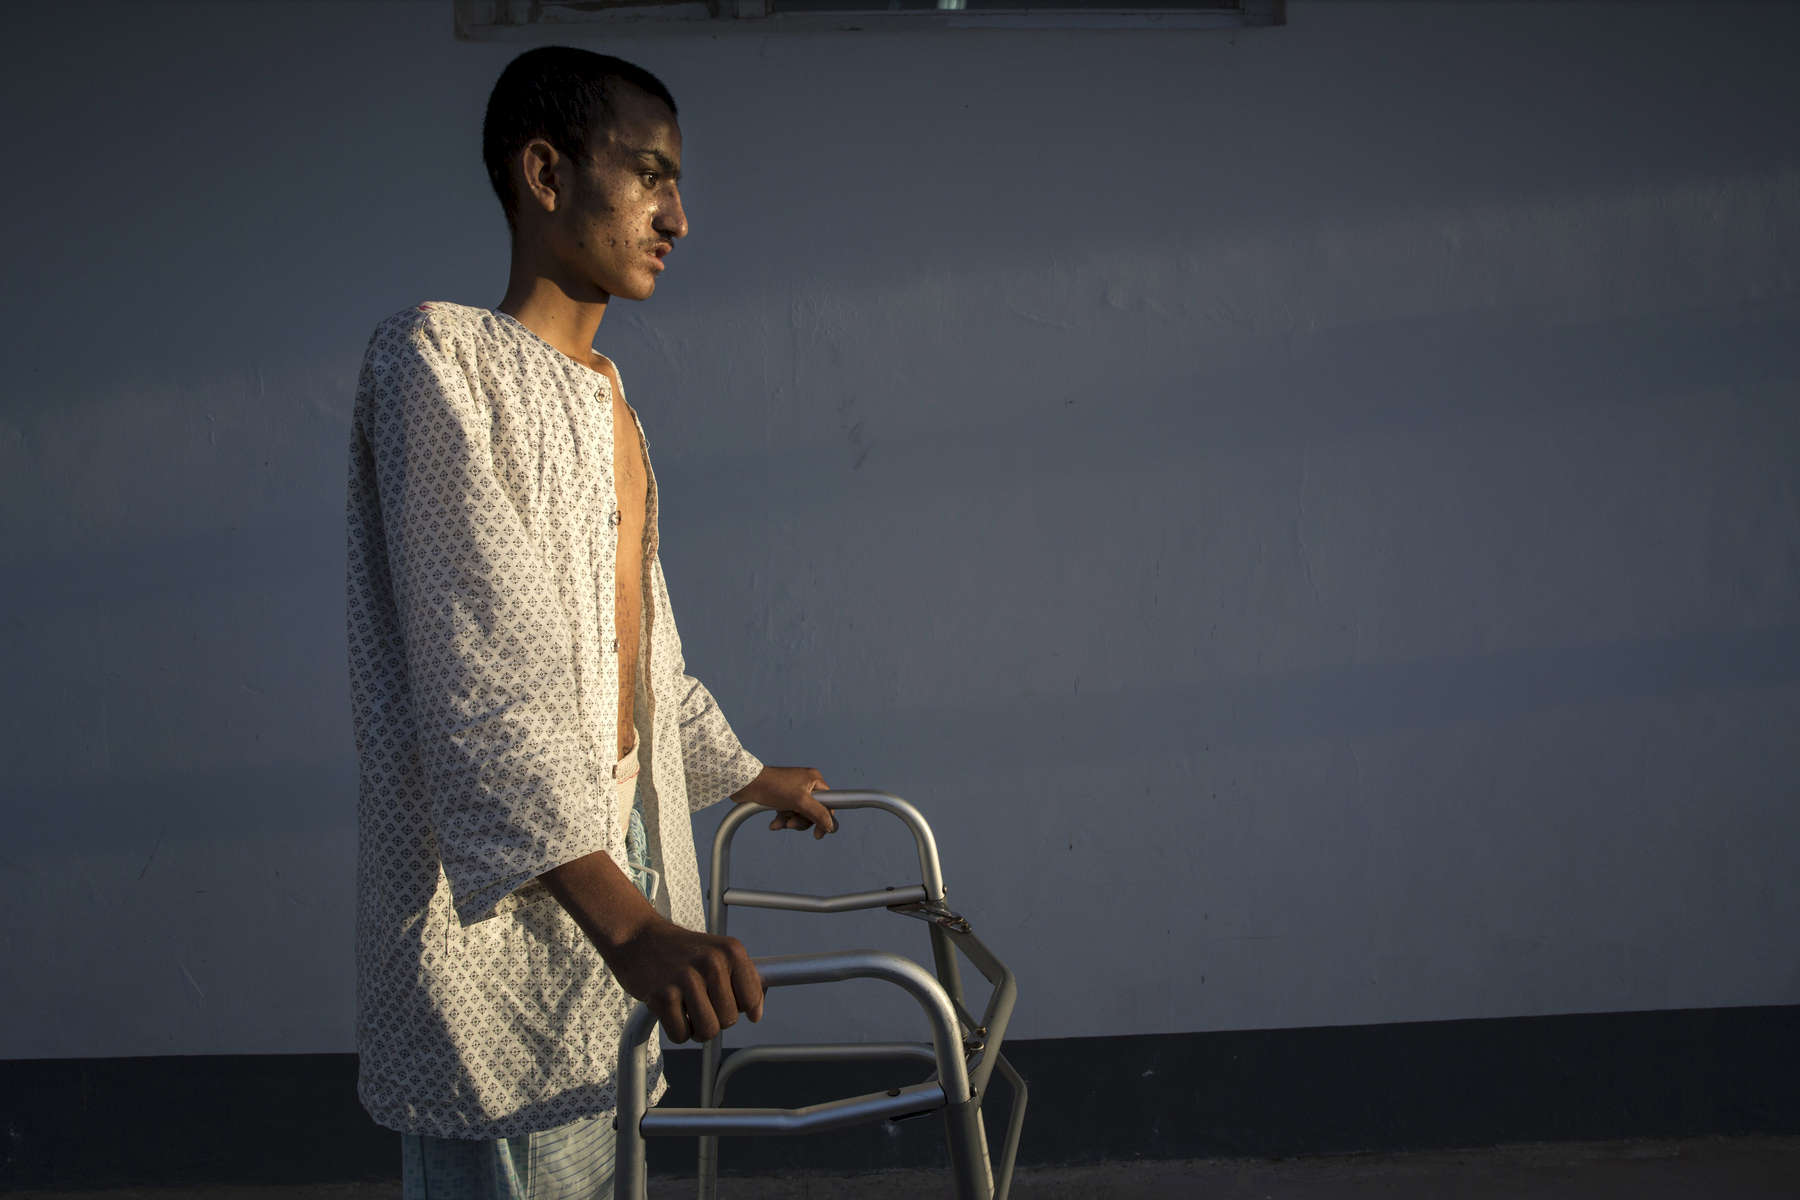 LASHKAR GAH, AFGHANISTAN -MARCH 26, 2015: Ahah Kahn, 19, barely is able to walk after a serious brain injury caused by an IED. Atah was a sheep herder from Helmand who was at the hospital for a month recovering his strength.  As of April, 2016 the Emergency hospital stated that in the first quarter their patient numbers were up more than 30% from last year. They stated that patients are coming from much further distances now especially since the bombing of the MSF hospital in Kunduz last year which cared for many in the region.  Afghan civilians are at greater risk today than at any time since Taliban rule. According to UN statistics, in the first half of 2016 at least 1,600 people had died, and more than 3,500 people were injured, a 4 per cent increase in overall civilian causalities compared to the same period last year. The upsurge in violence has had devastating consequences for civilians, with suicide bombings and targeted attacks by the Taliban and other insurgents causing 70 percent of all civilian casualties.